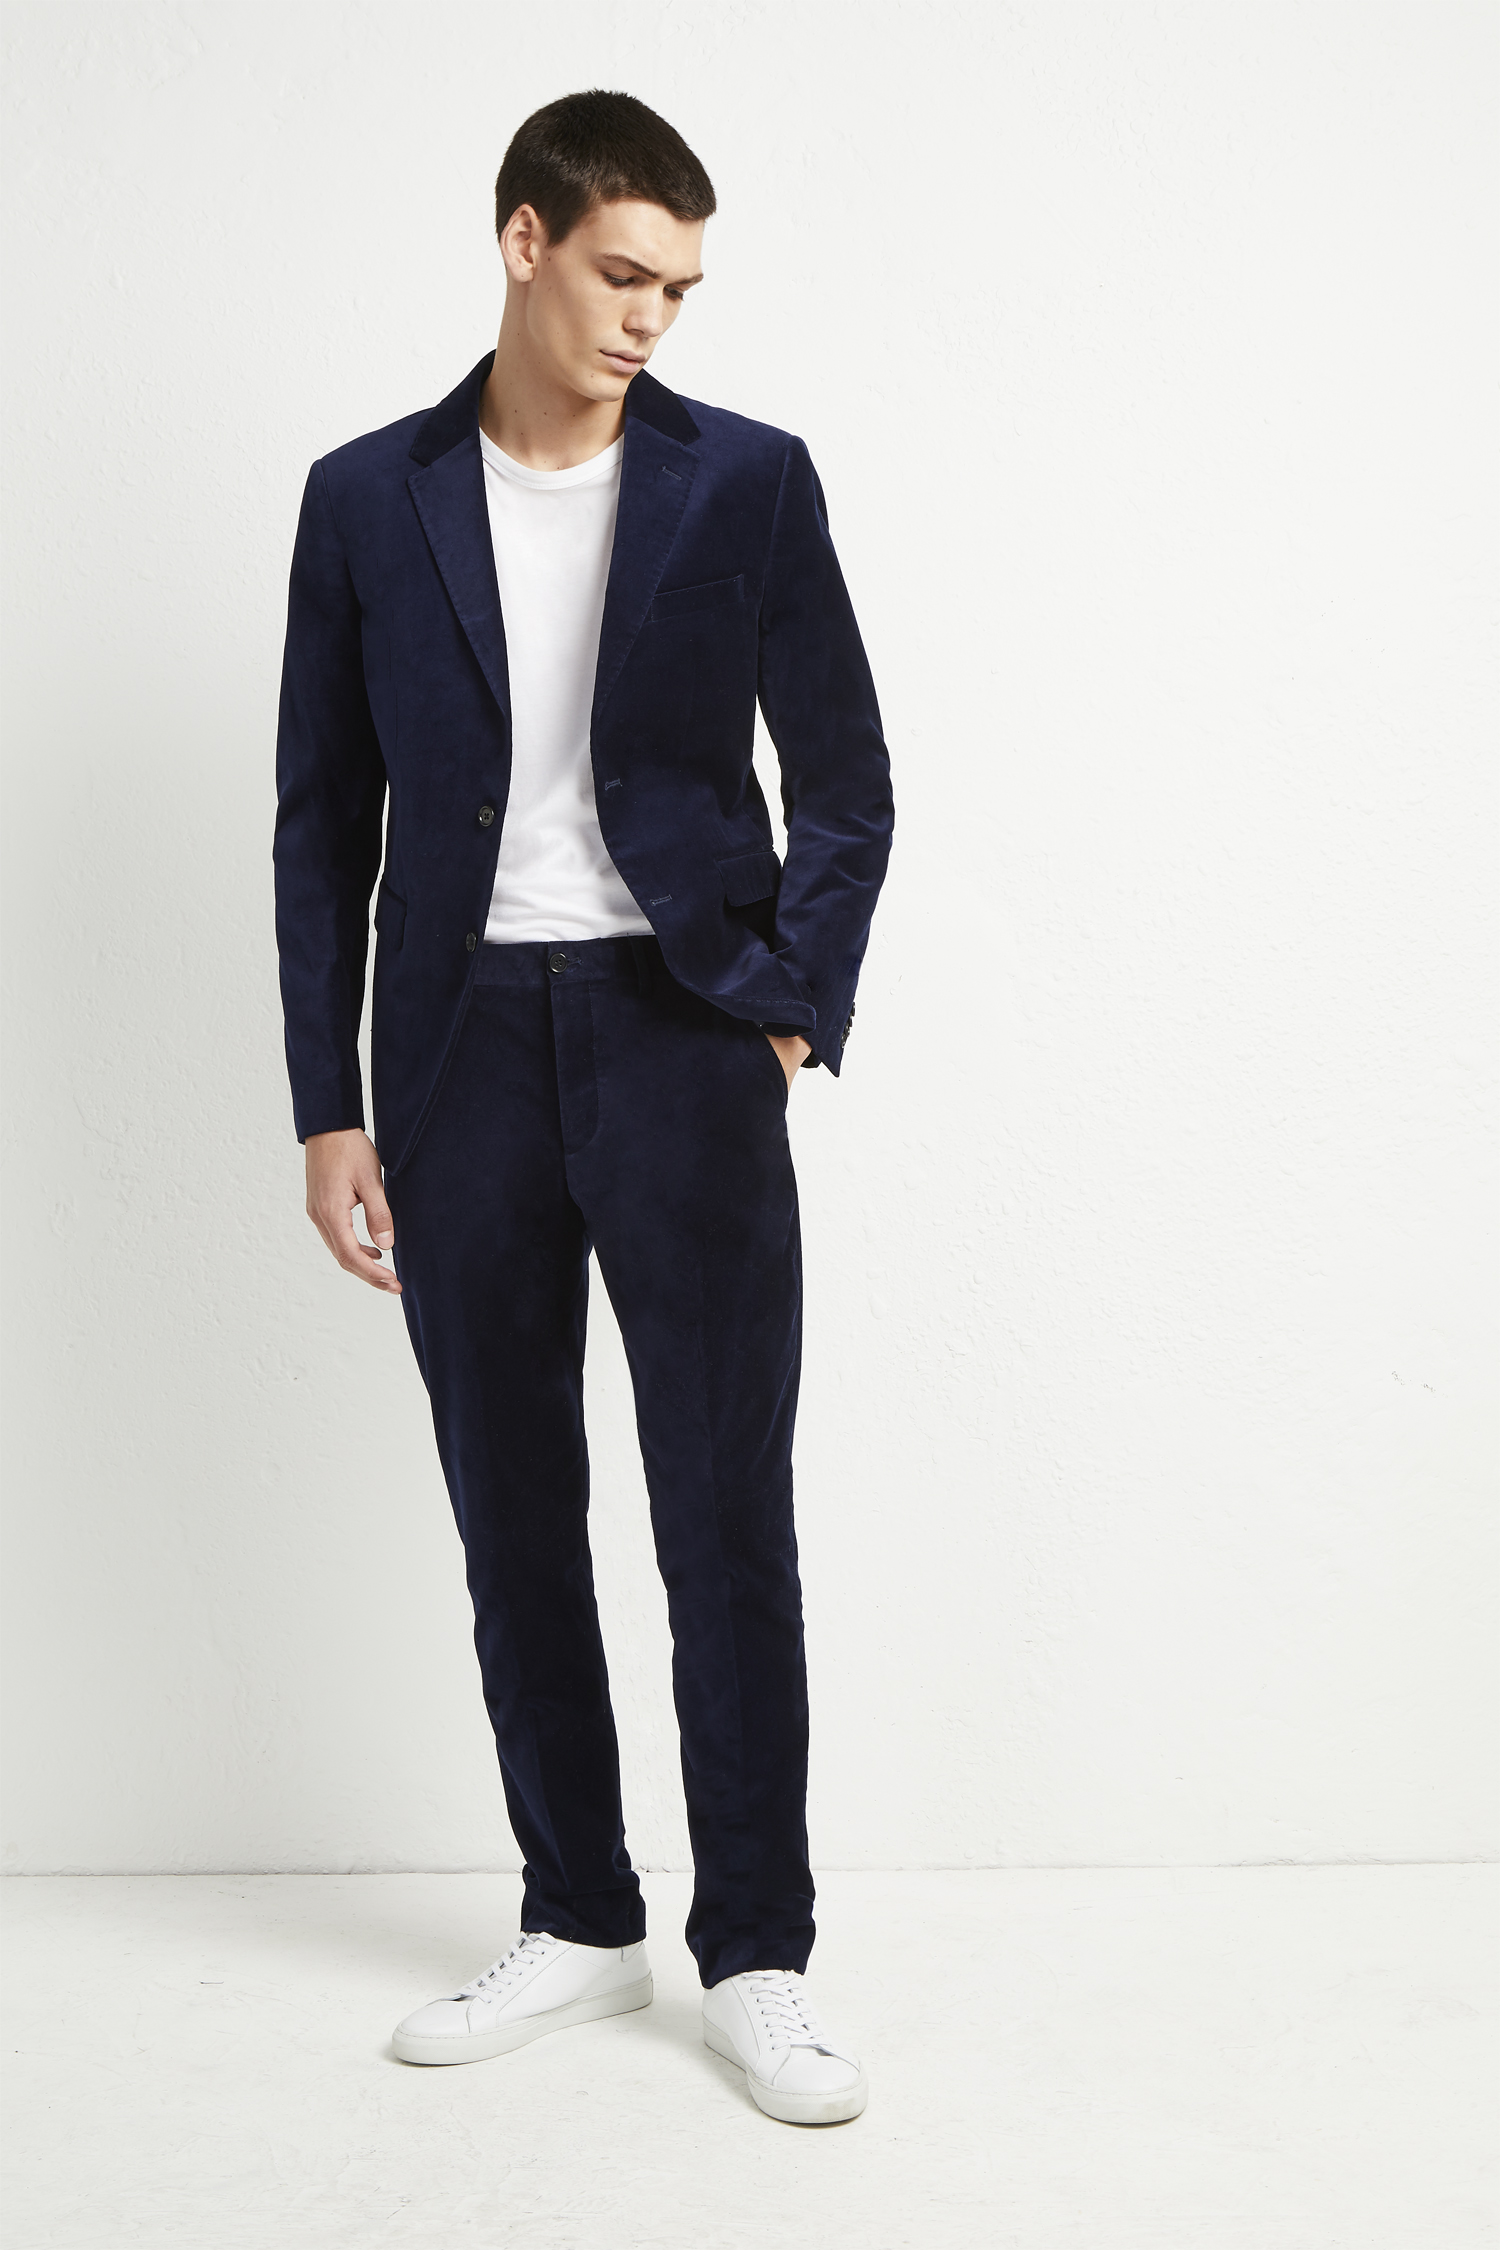 men's winter wedding outfits